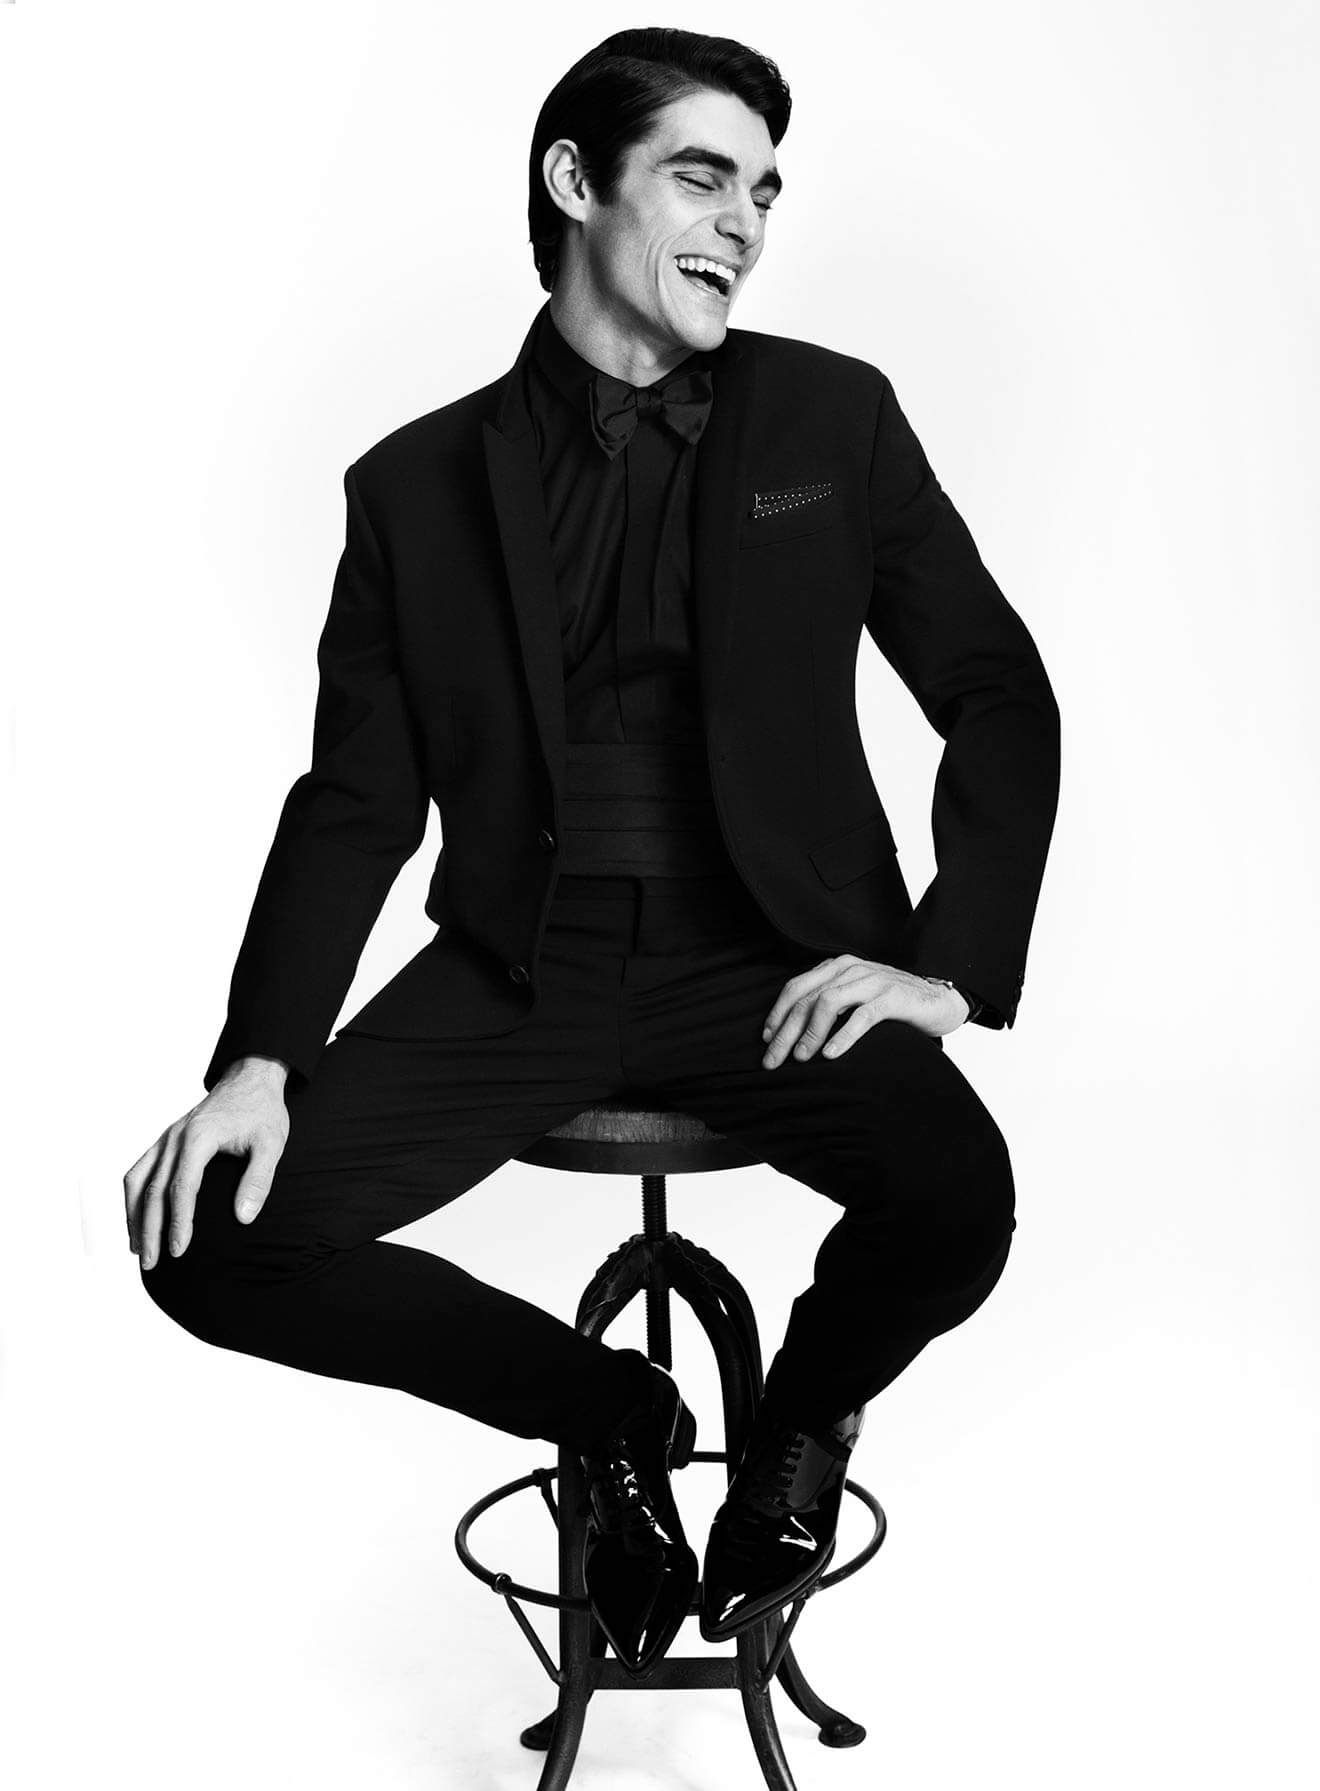 Chillin' with RJ Mitte, black and white, smiling on stool, tux